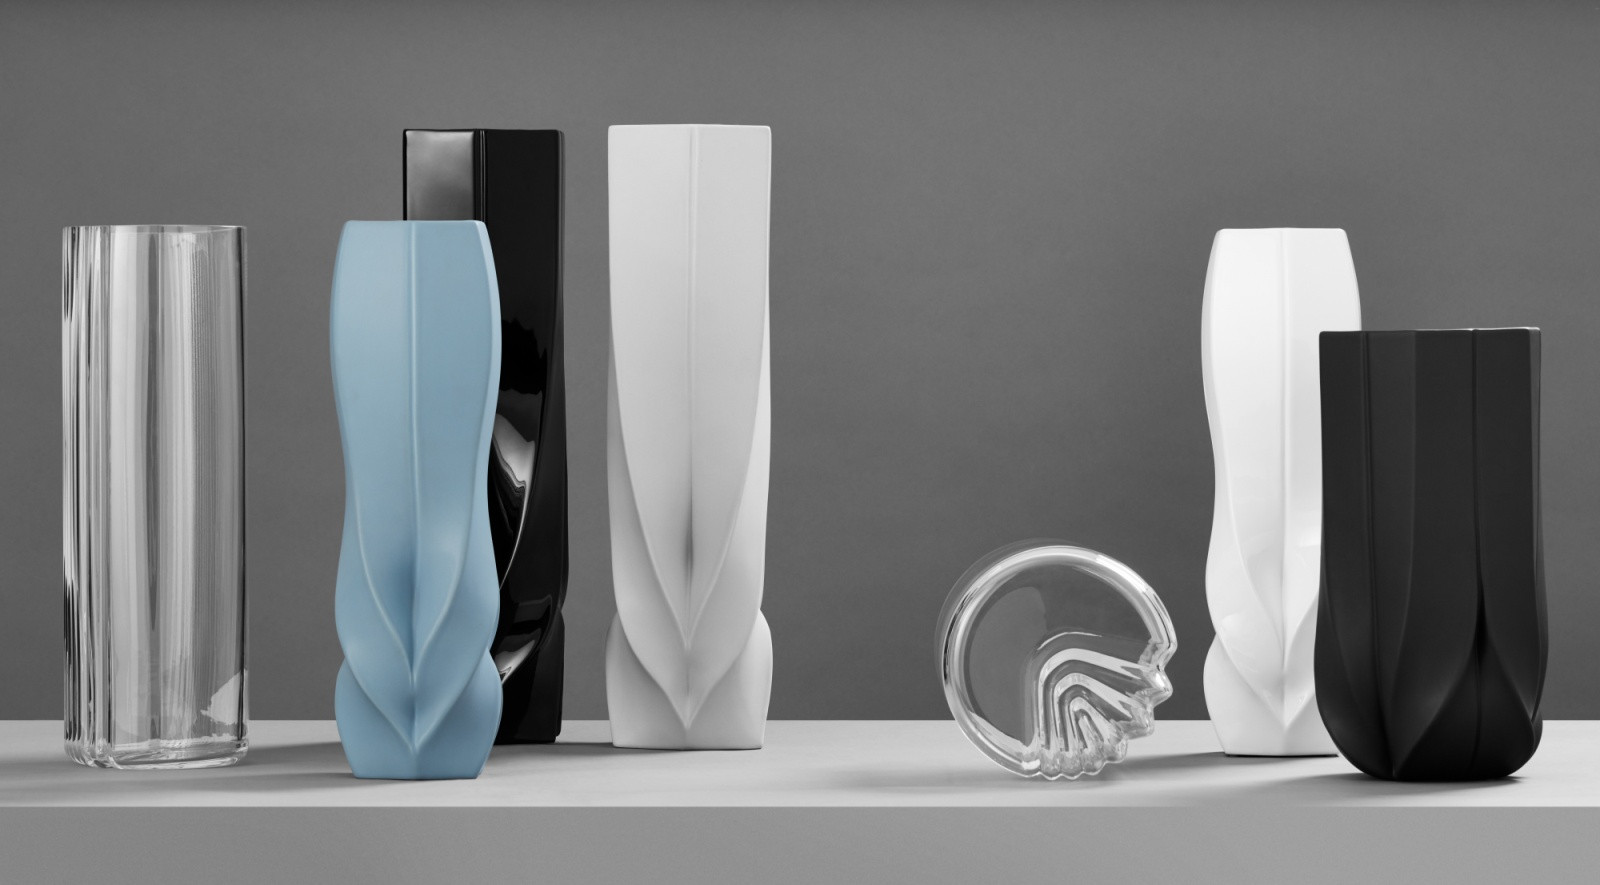 zaha hadid vase of zaha hadid design 2018 collection at maison et objet 00 a as for zaha hadid design 2018 collection